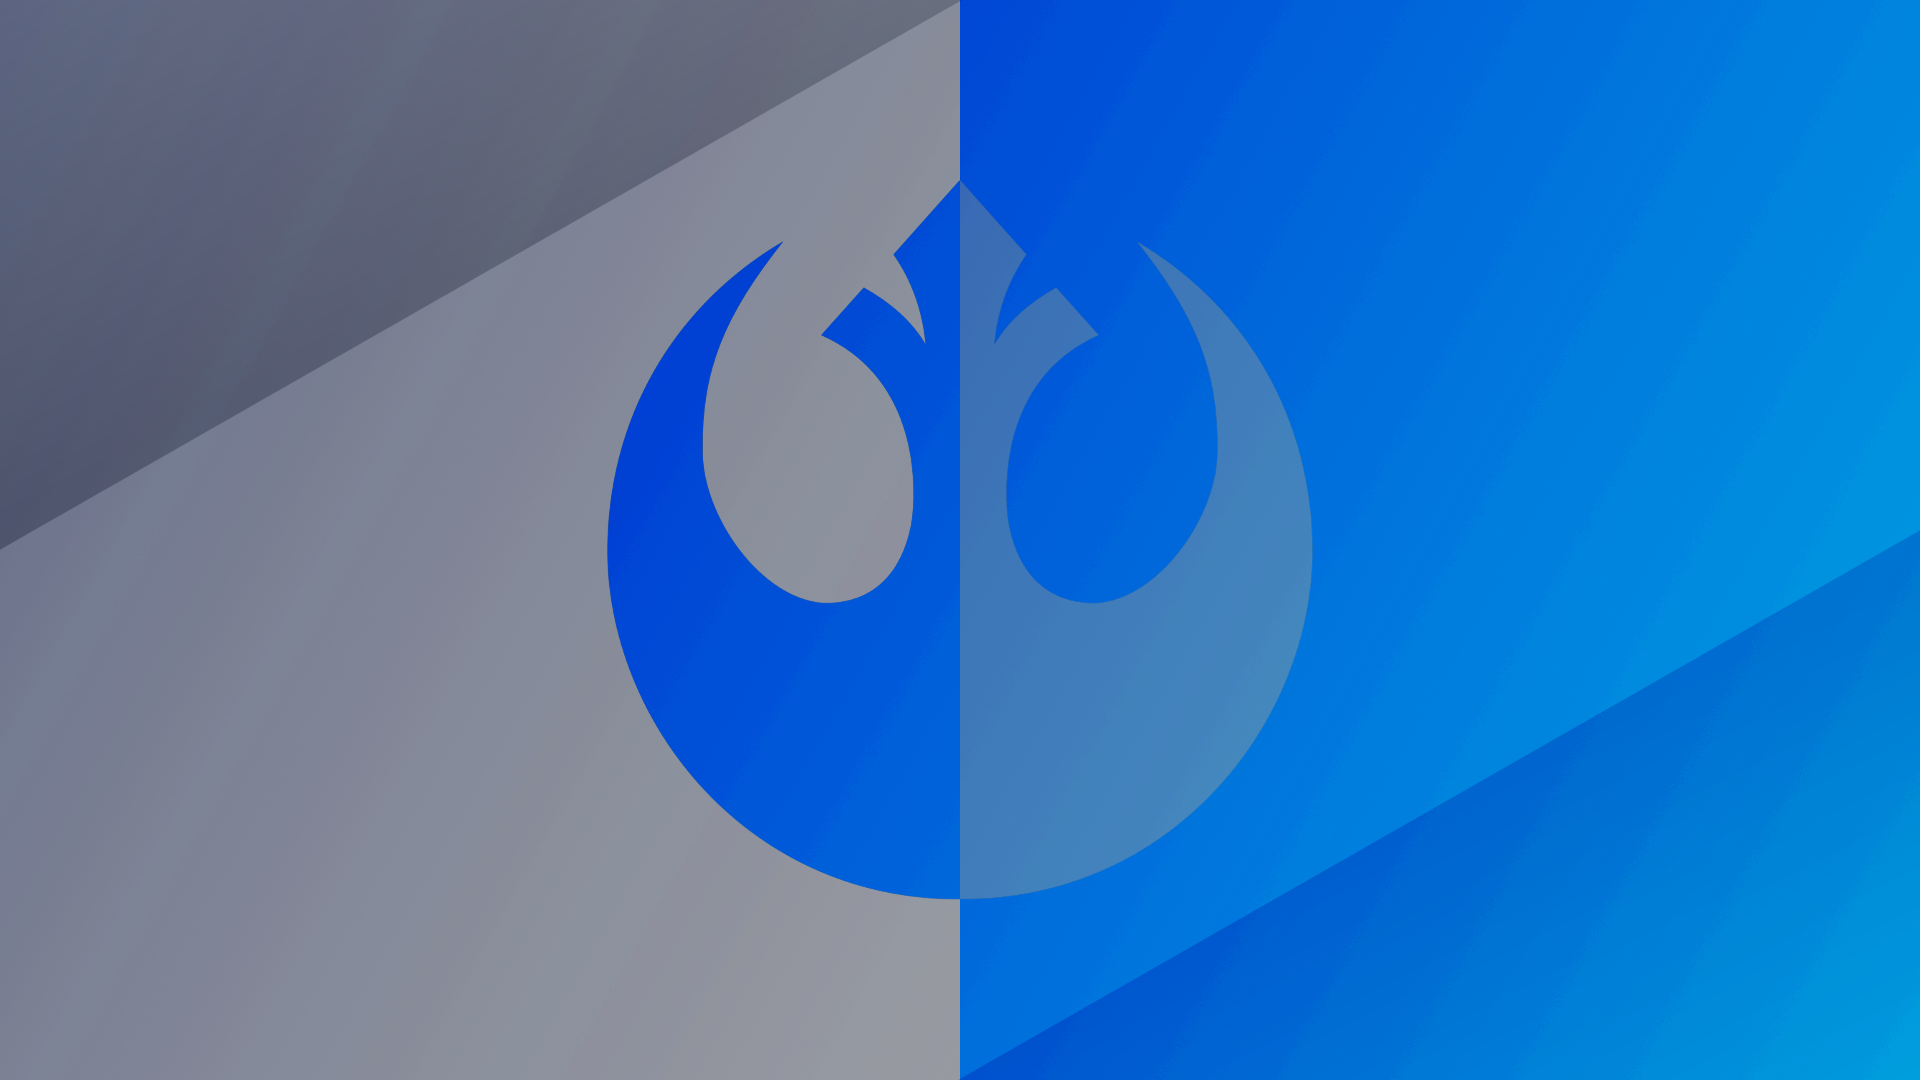 Star Wars Rebels Wallpaper Blue